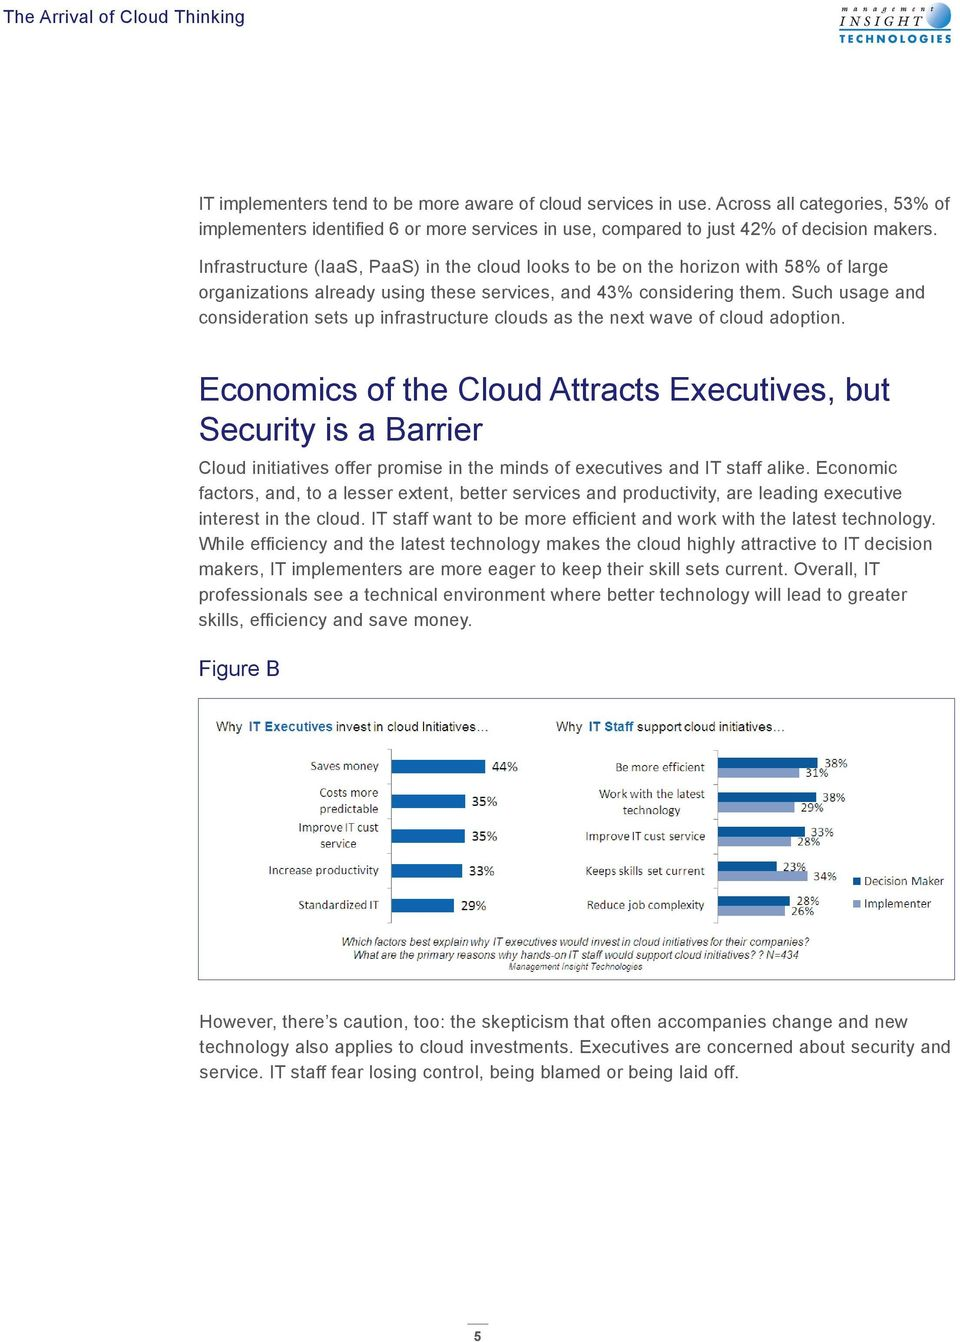 Such usage and consideration sets up infrastructure clouds as the next wave of cloud adoption.